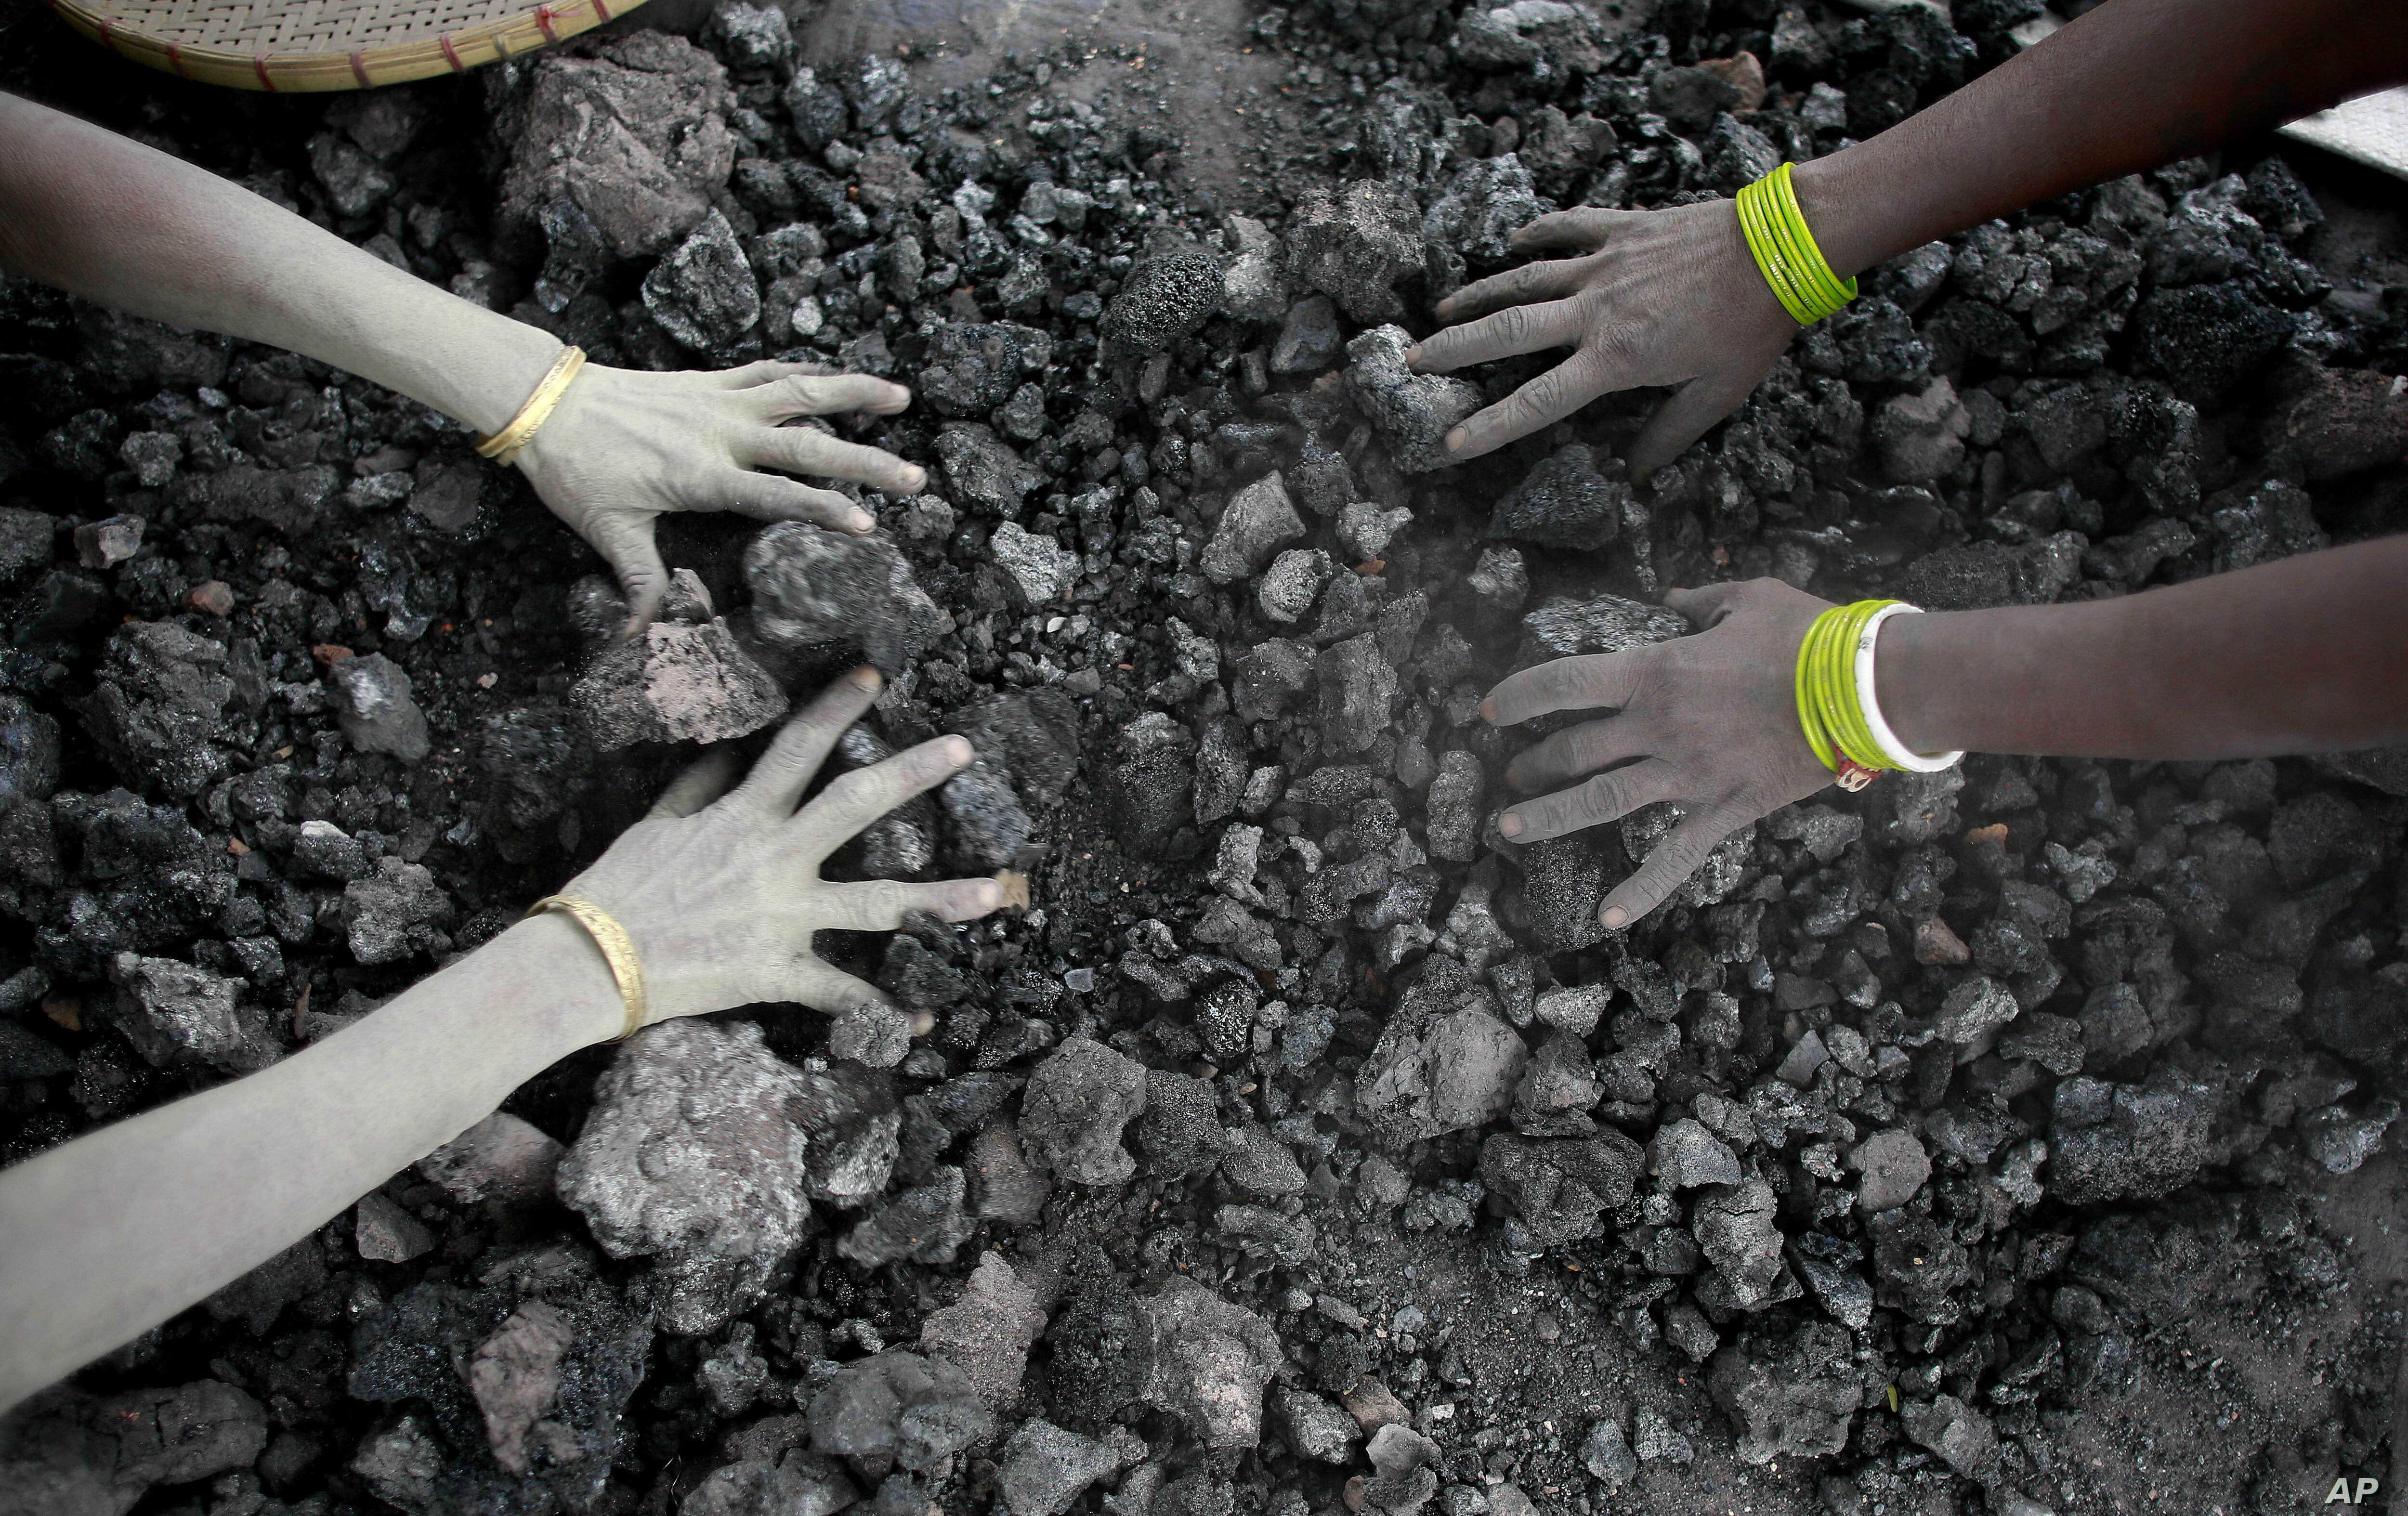 FILE - In this Monday, Dec. 14, 2015, file photo, Indian women use bare hands to pick reusable pieces from heaps of used coal discarded by a carbon factory in Gauhati, India. Thirteen young miners were missing and feared dead following the collapse o